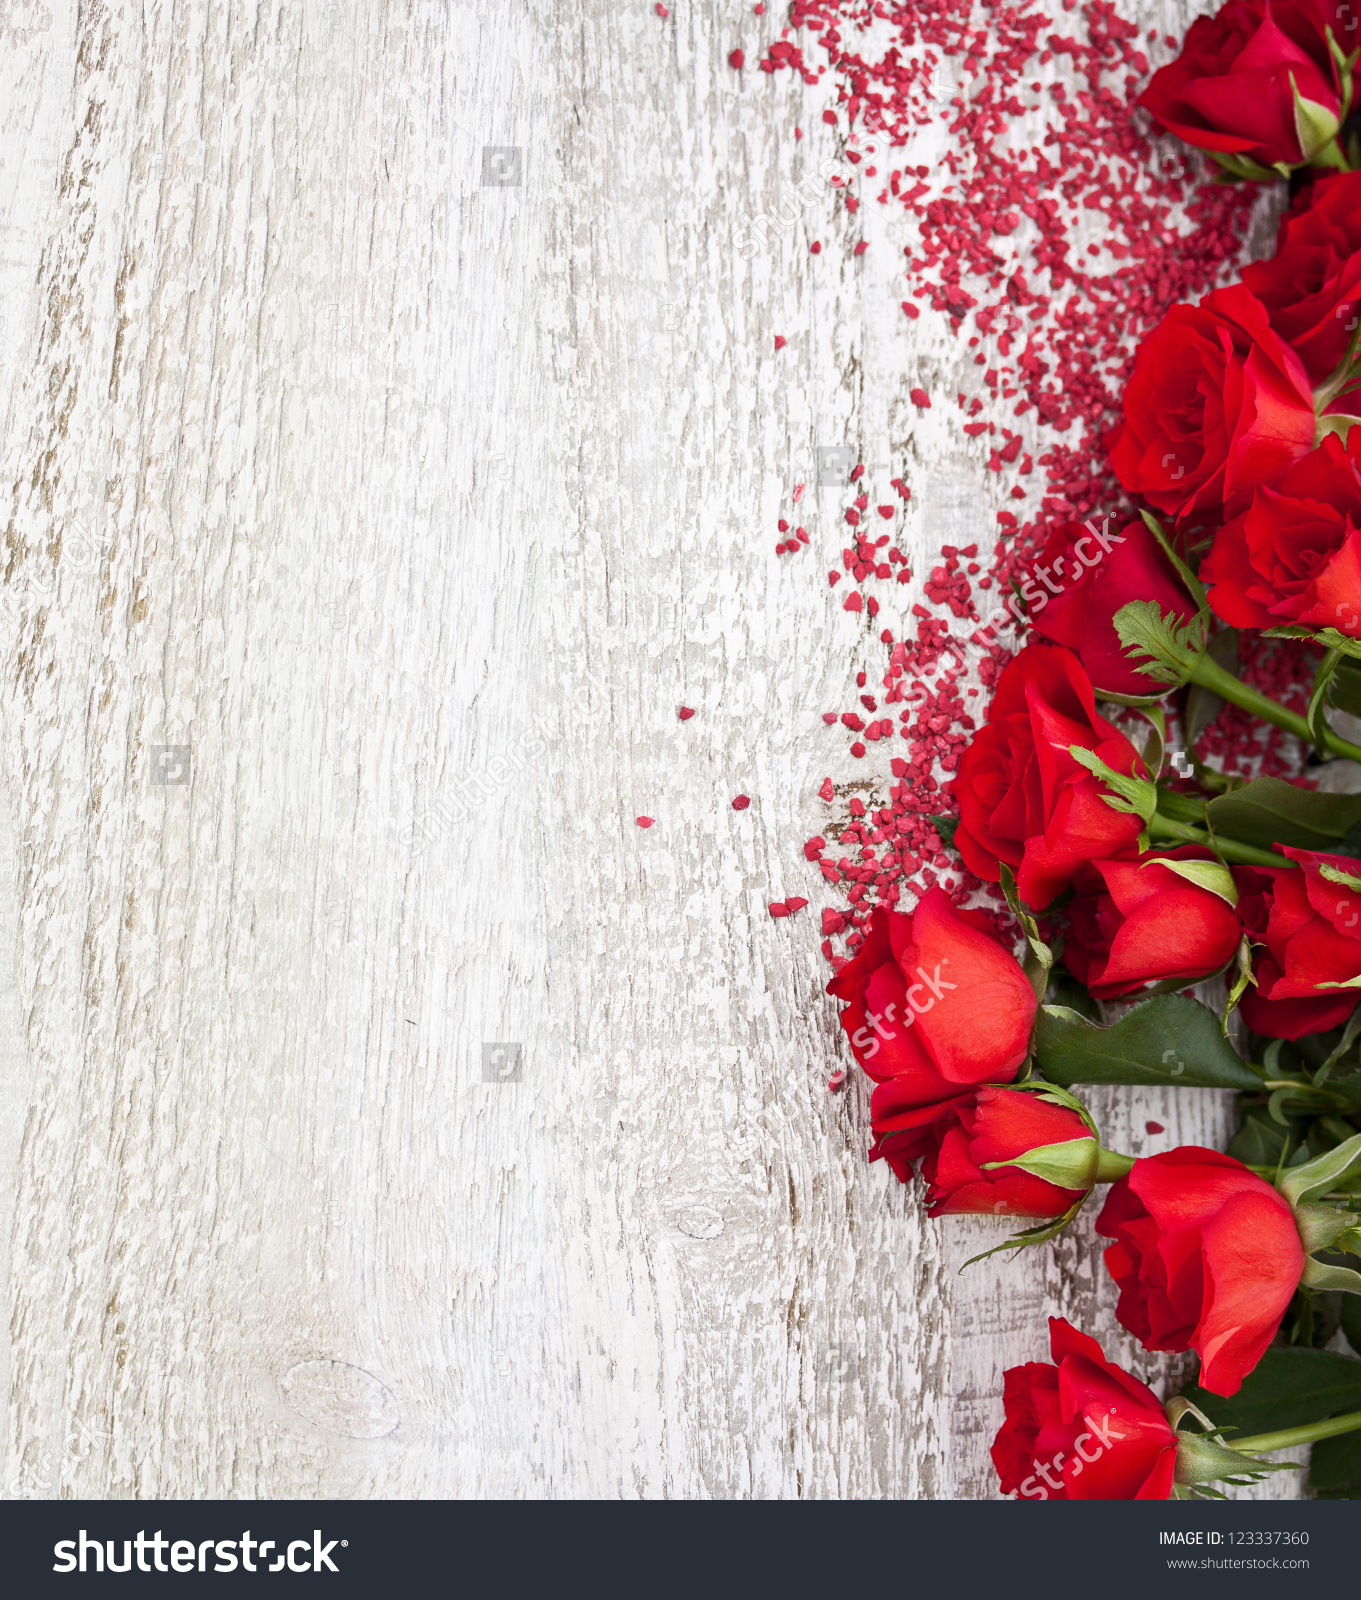 Wallpaper Hd Floral Background Images With Roses Clipground